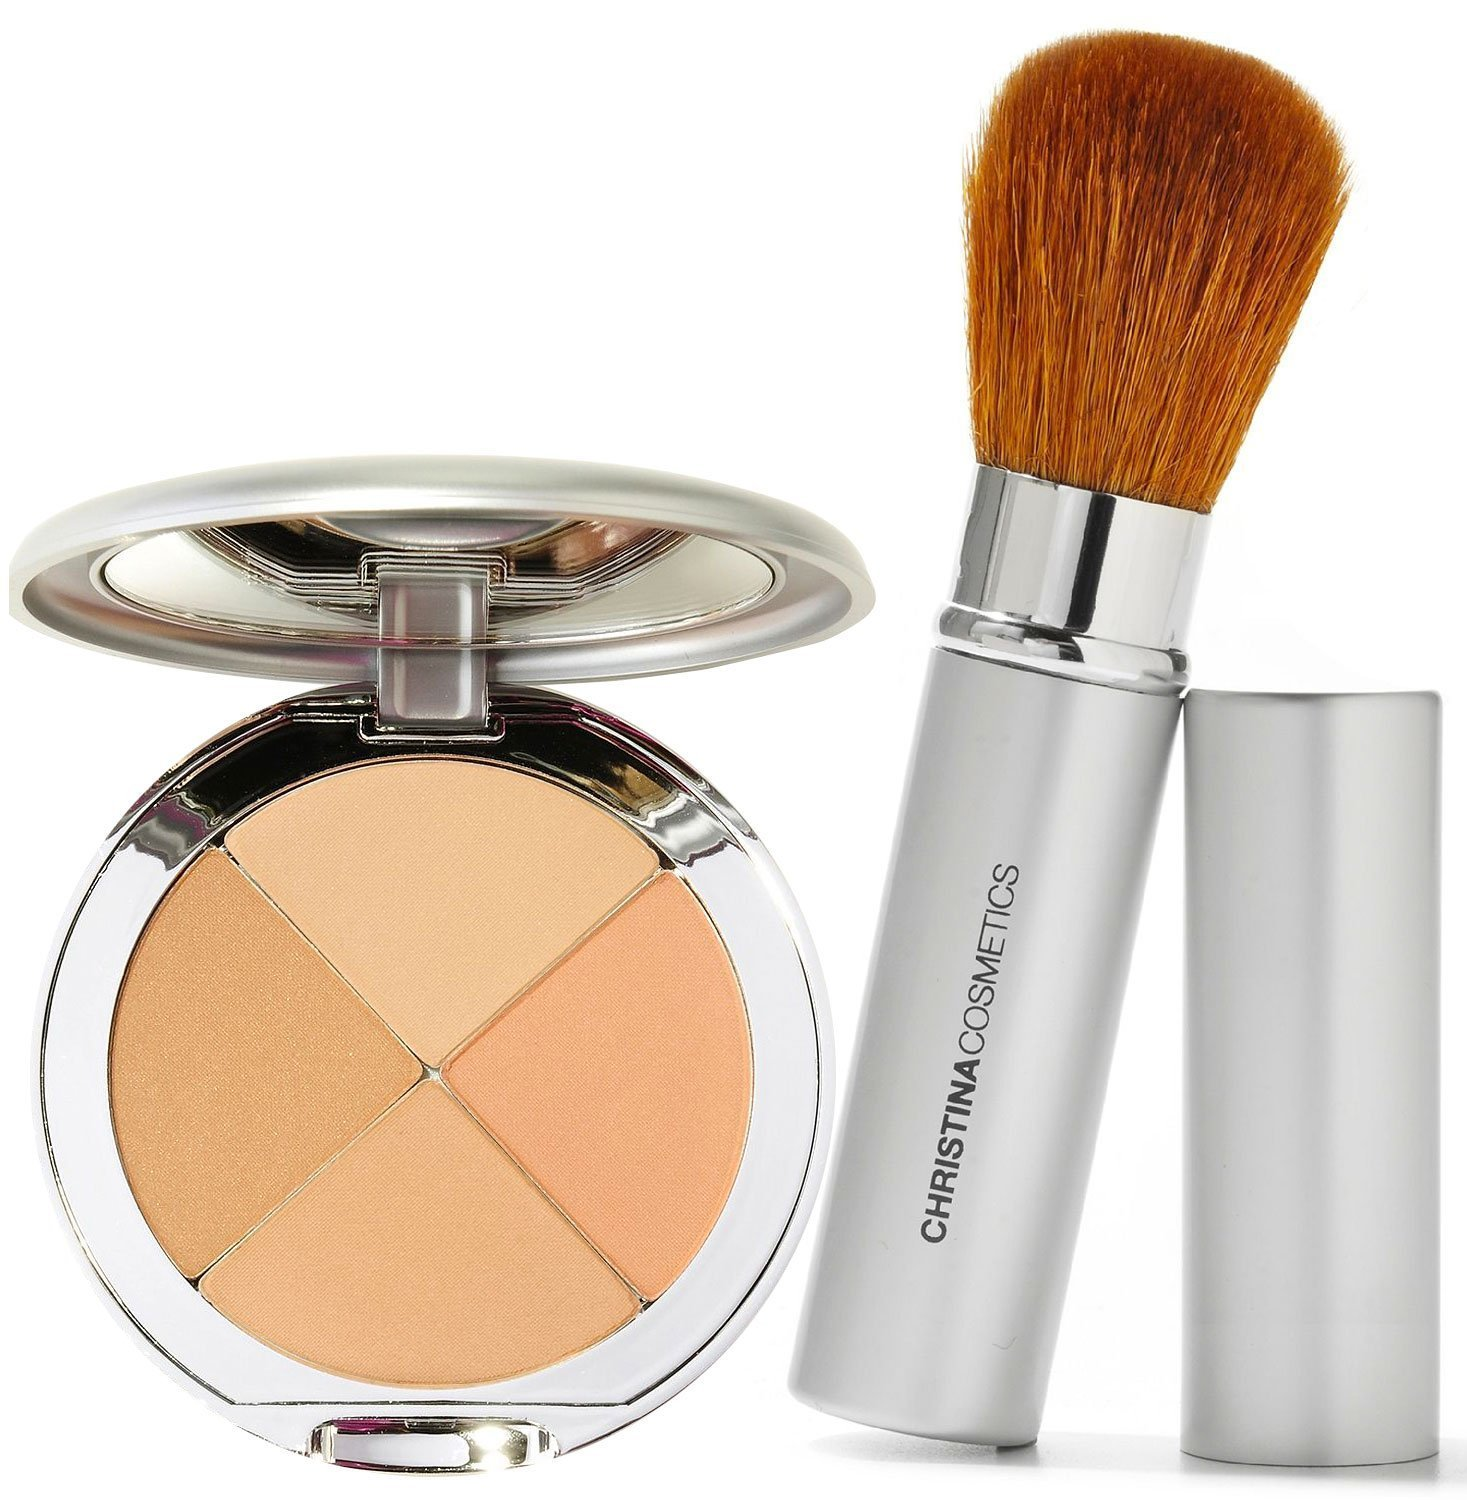 Christina Cosmetics Perfect Pigment 2 Compact and Retractable Brush Duo!